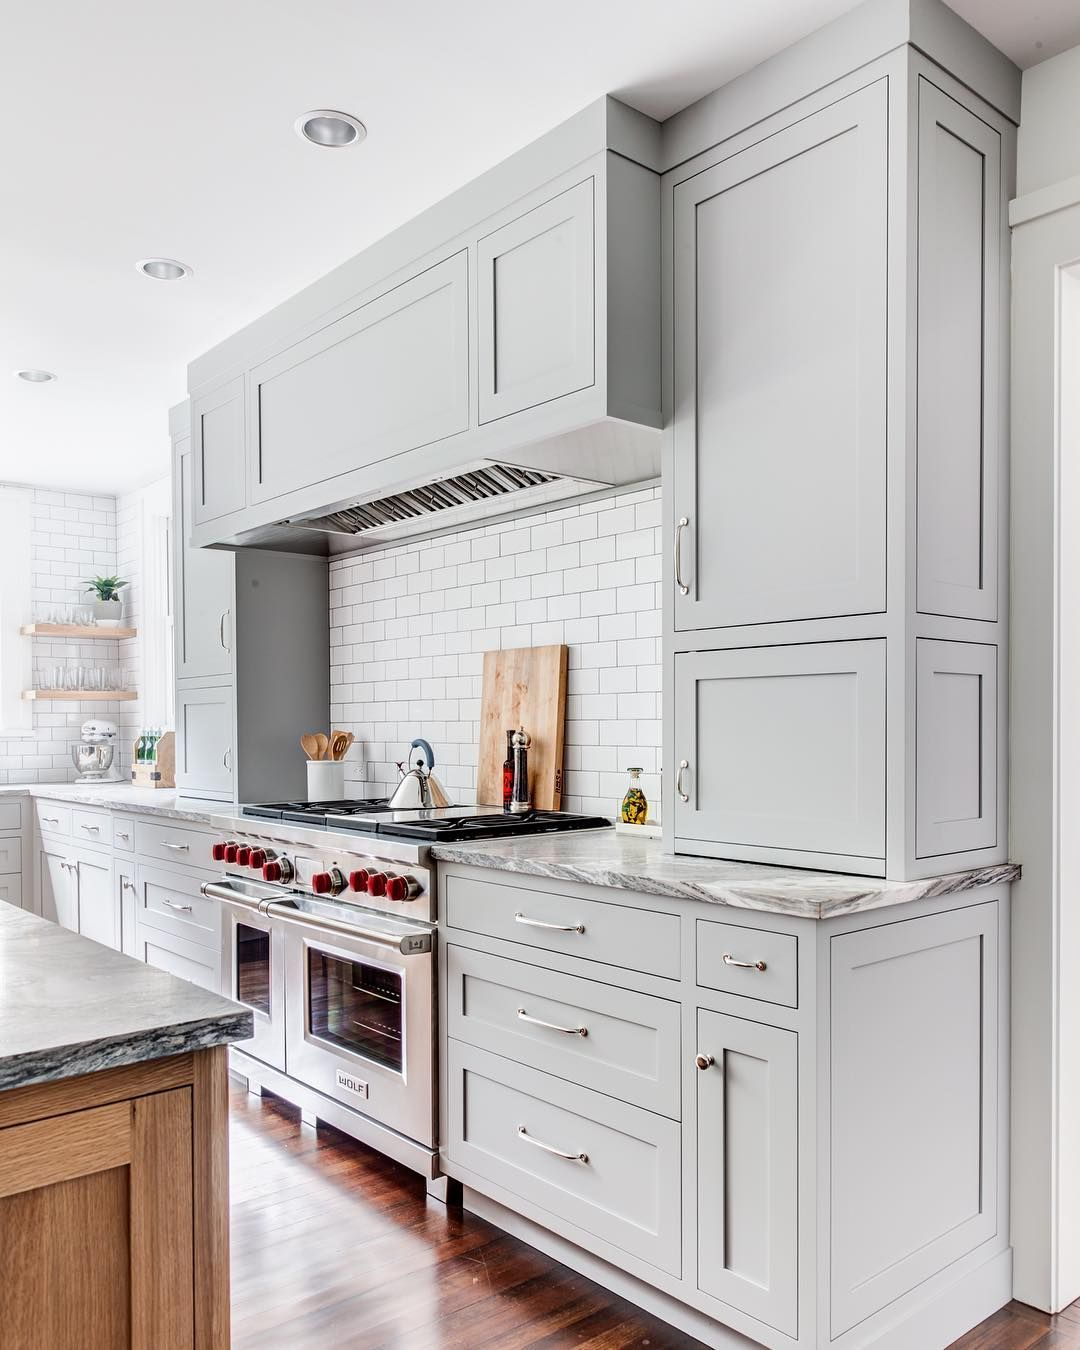 Cabinet Color Is Benjamin Moore Coventry Gray